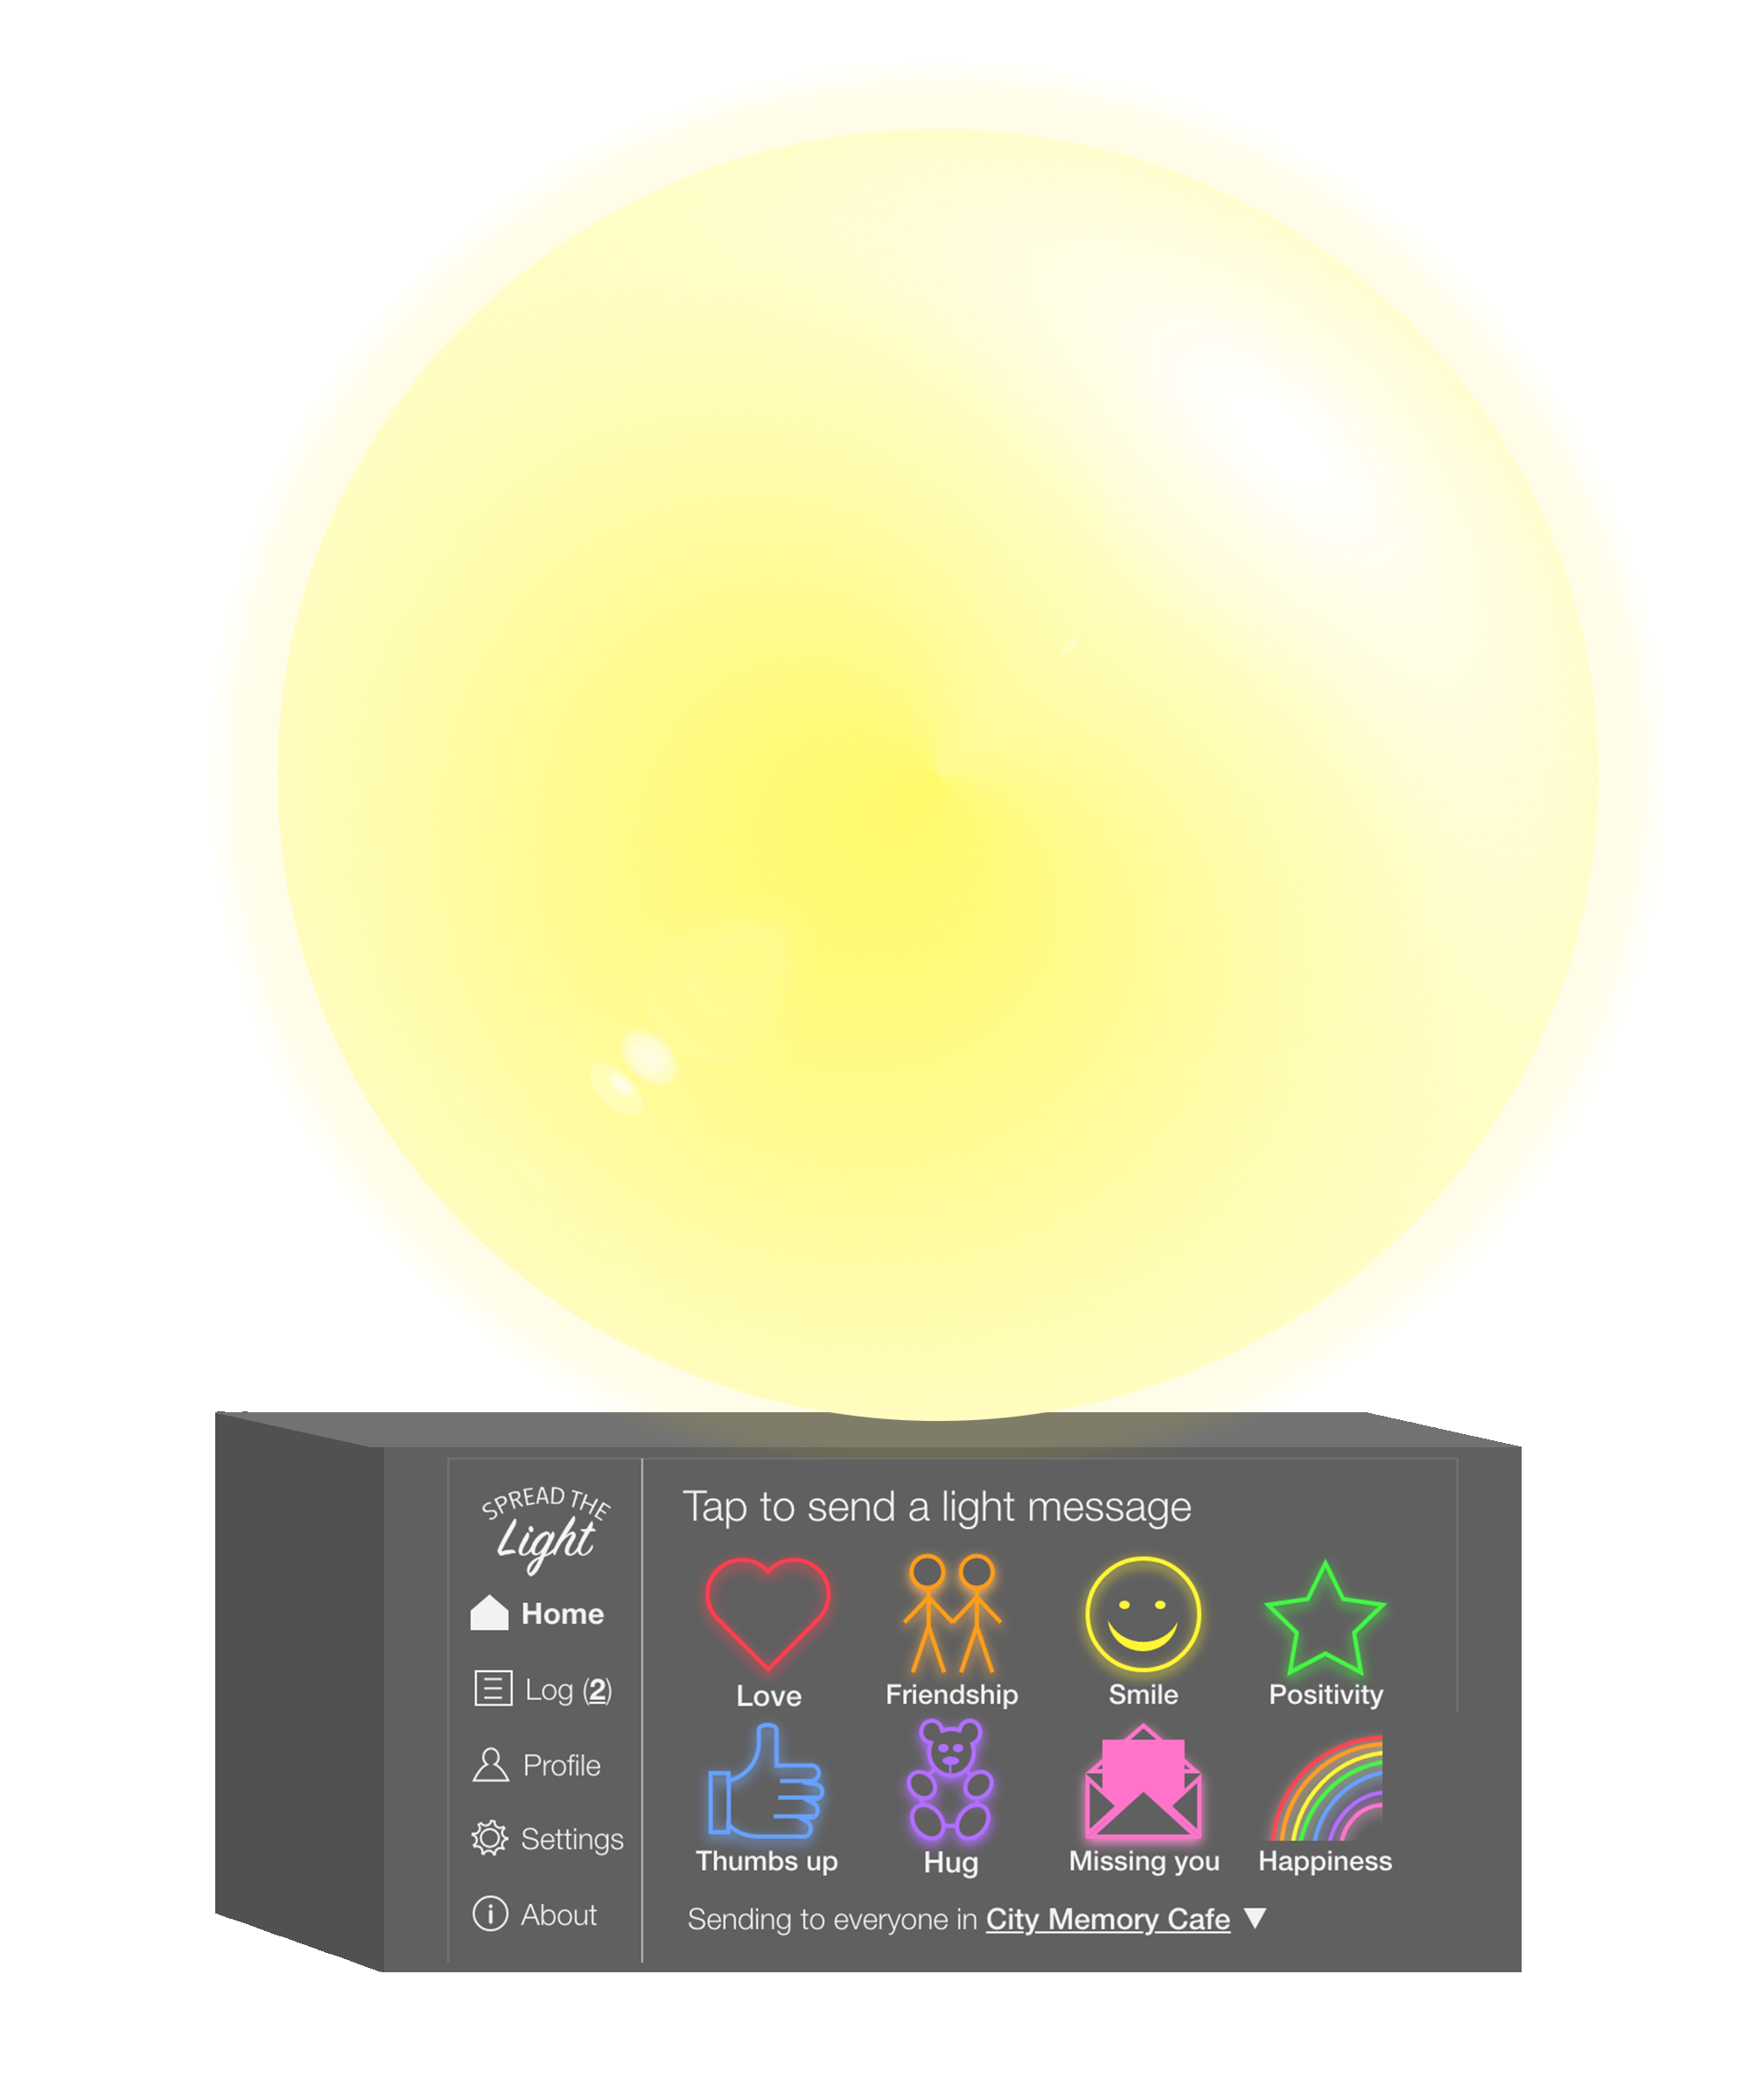 Spread the light device with yellow light meaning Smile message was received.